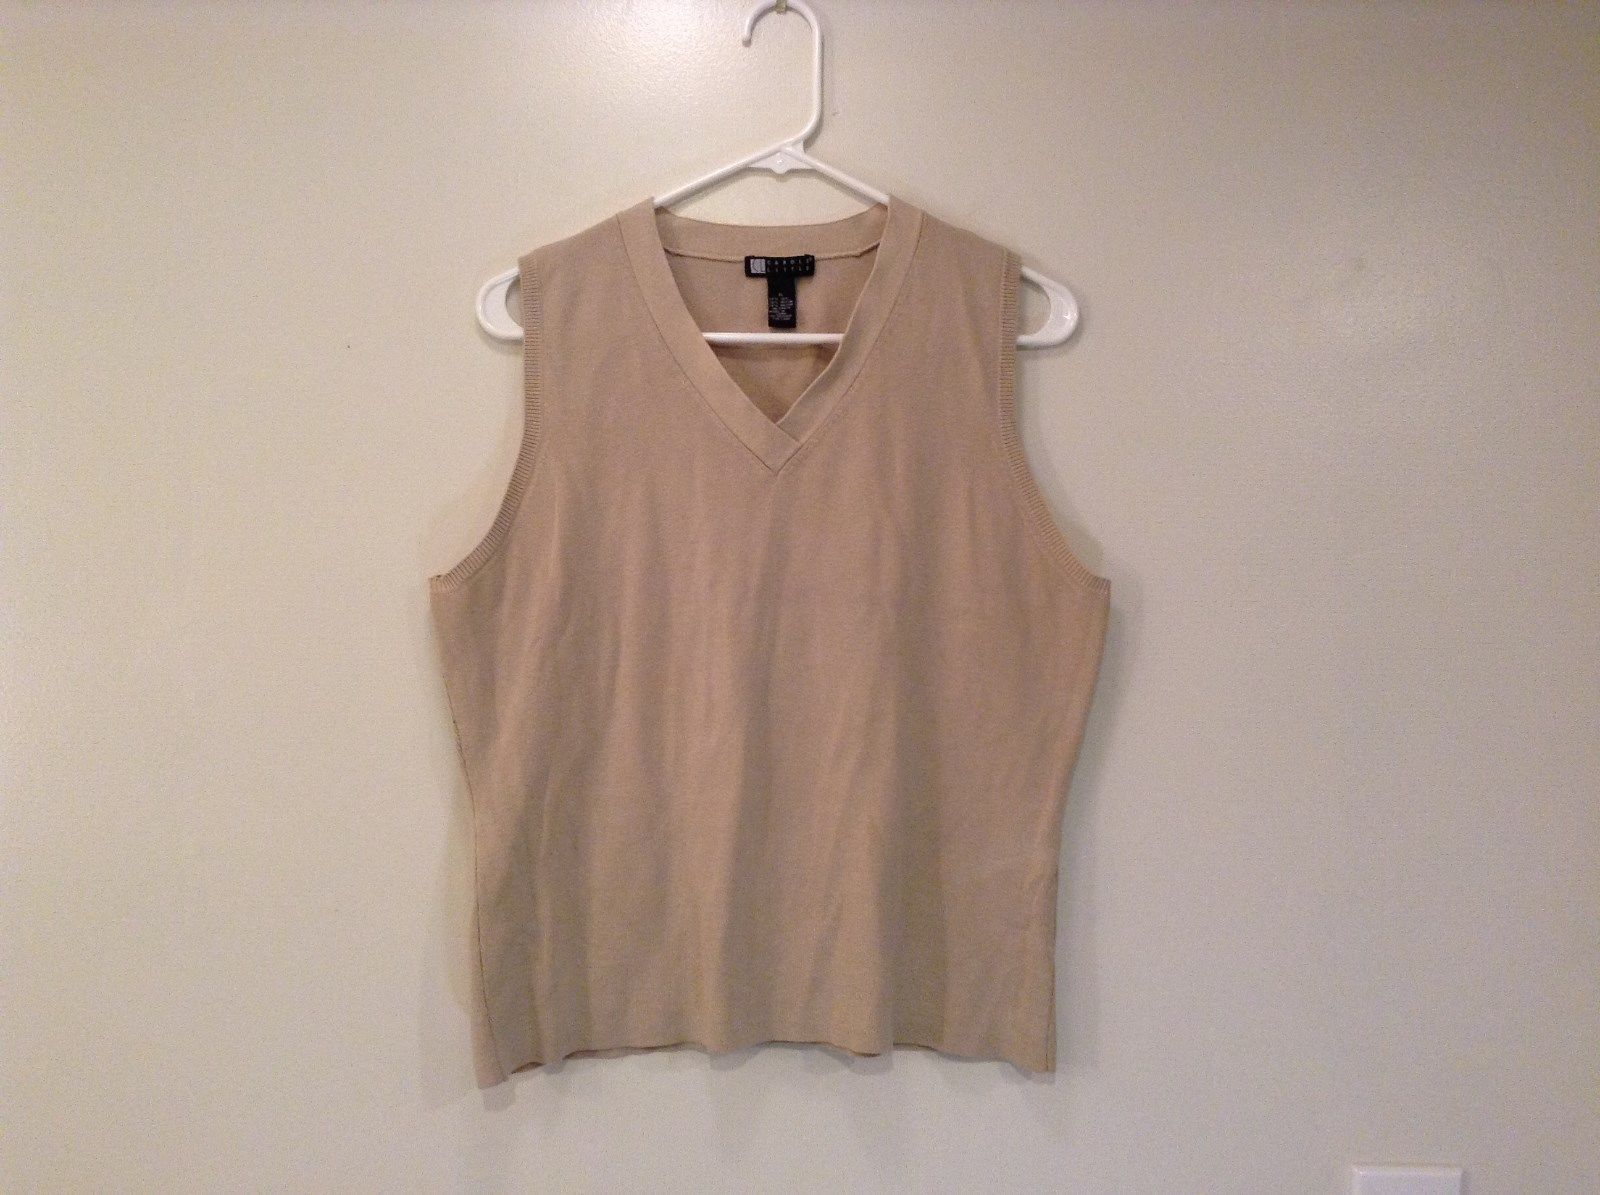 Beige Sleeveless Top Vest Carole Little V Neck Size XL